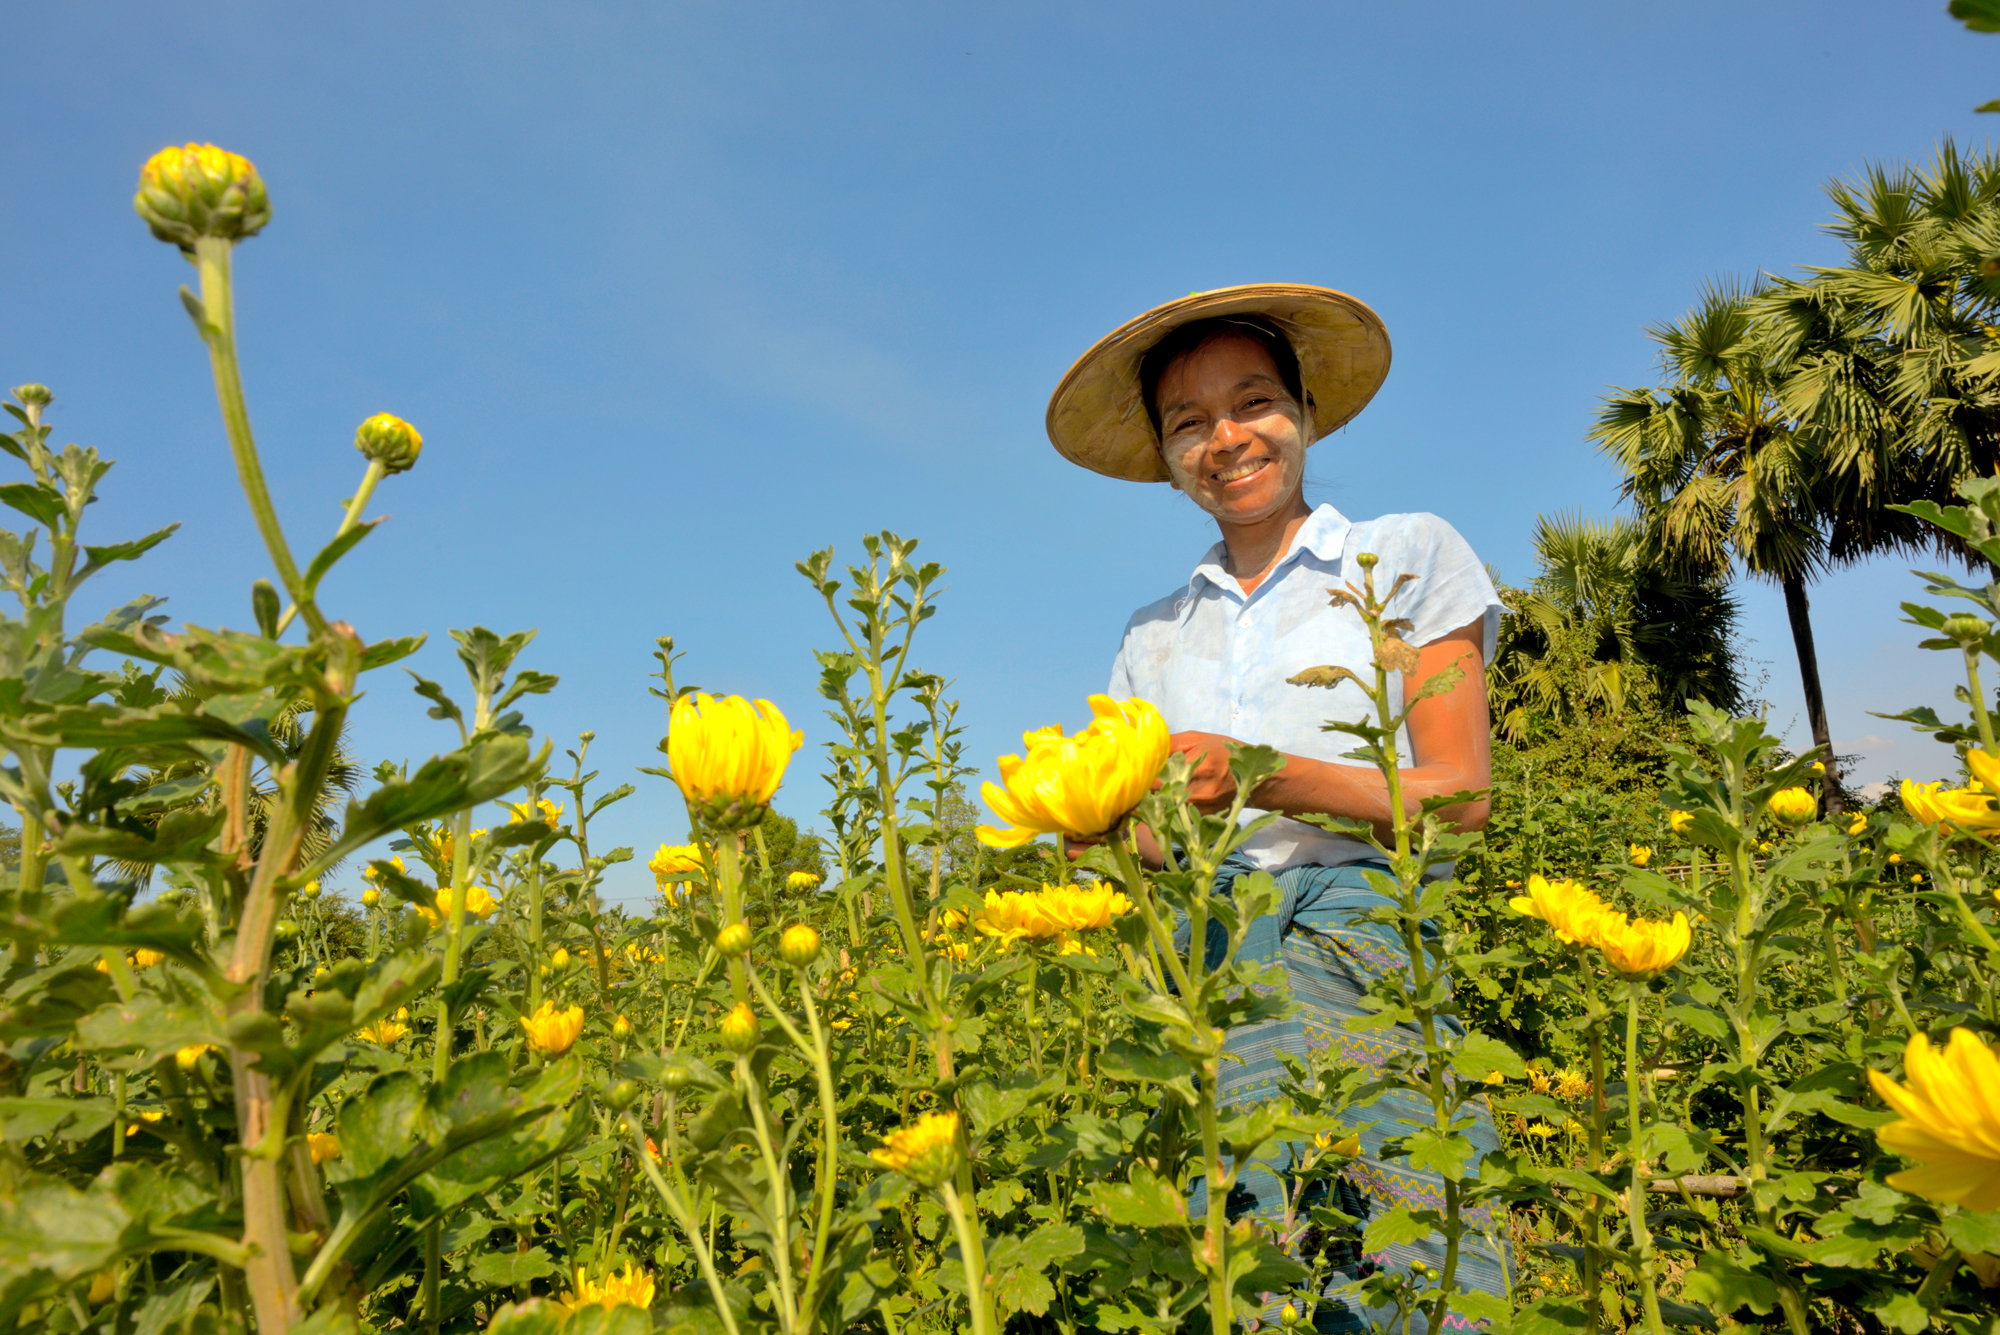 Daw Thin Thin standing in her field of Chrysanthemums that she grows for income.